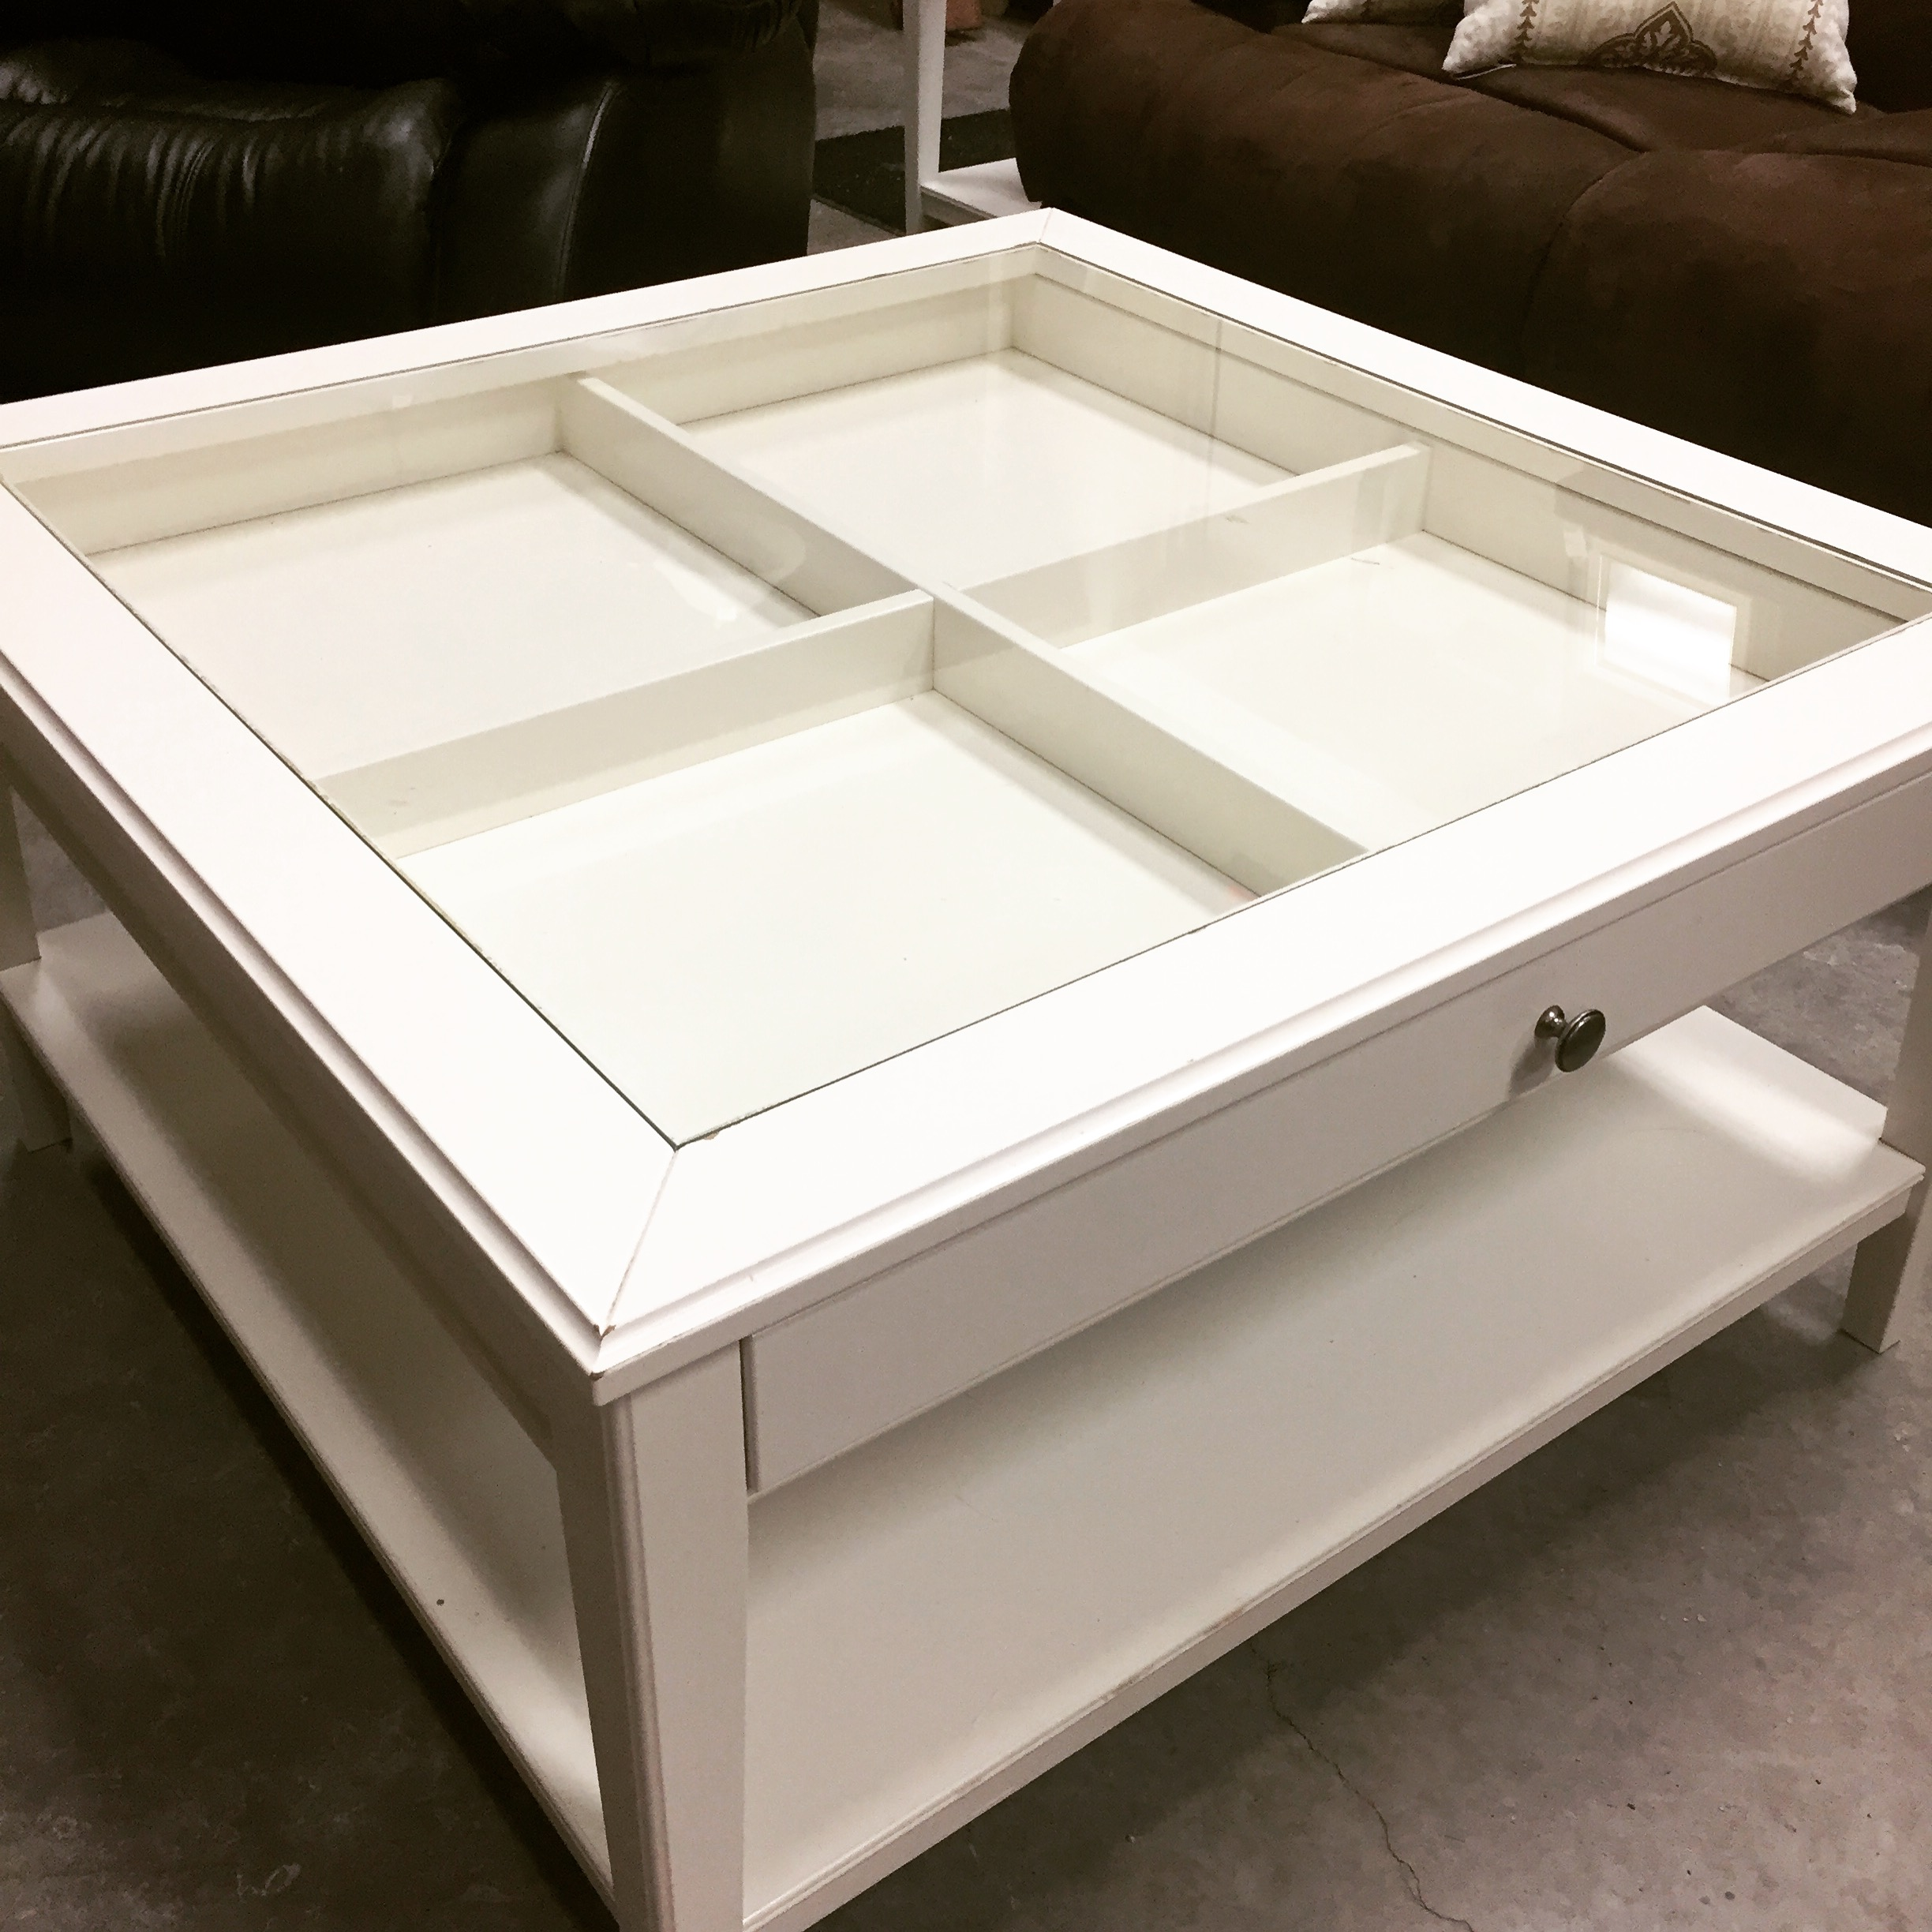 36 1 2 X 36 1 2 White Glass Insert Coffee Table Sold Designsbyconsign